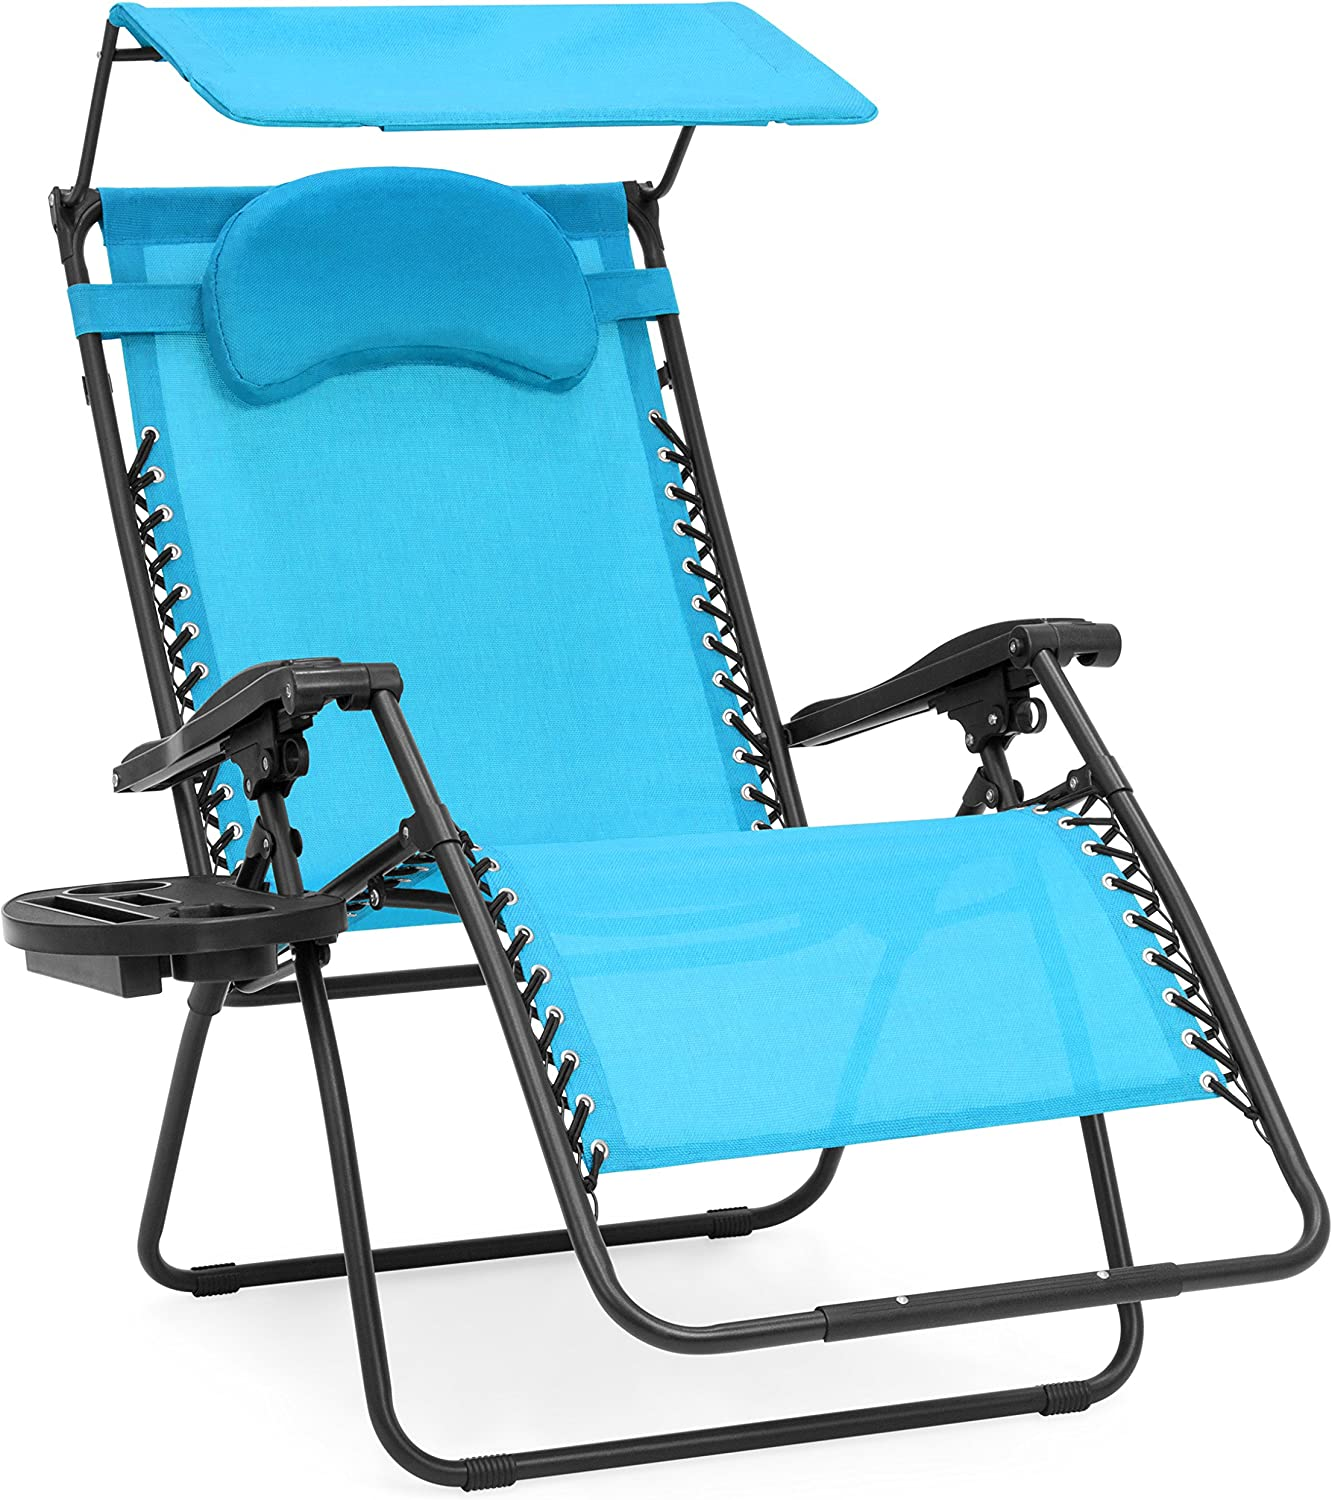 Best Reclining Patio Chairs (2020): Top 10 Ever 4